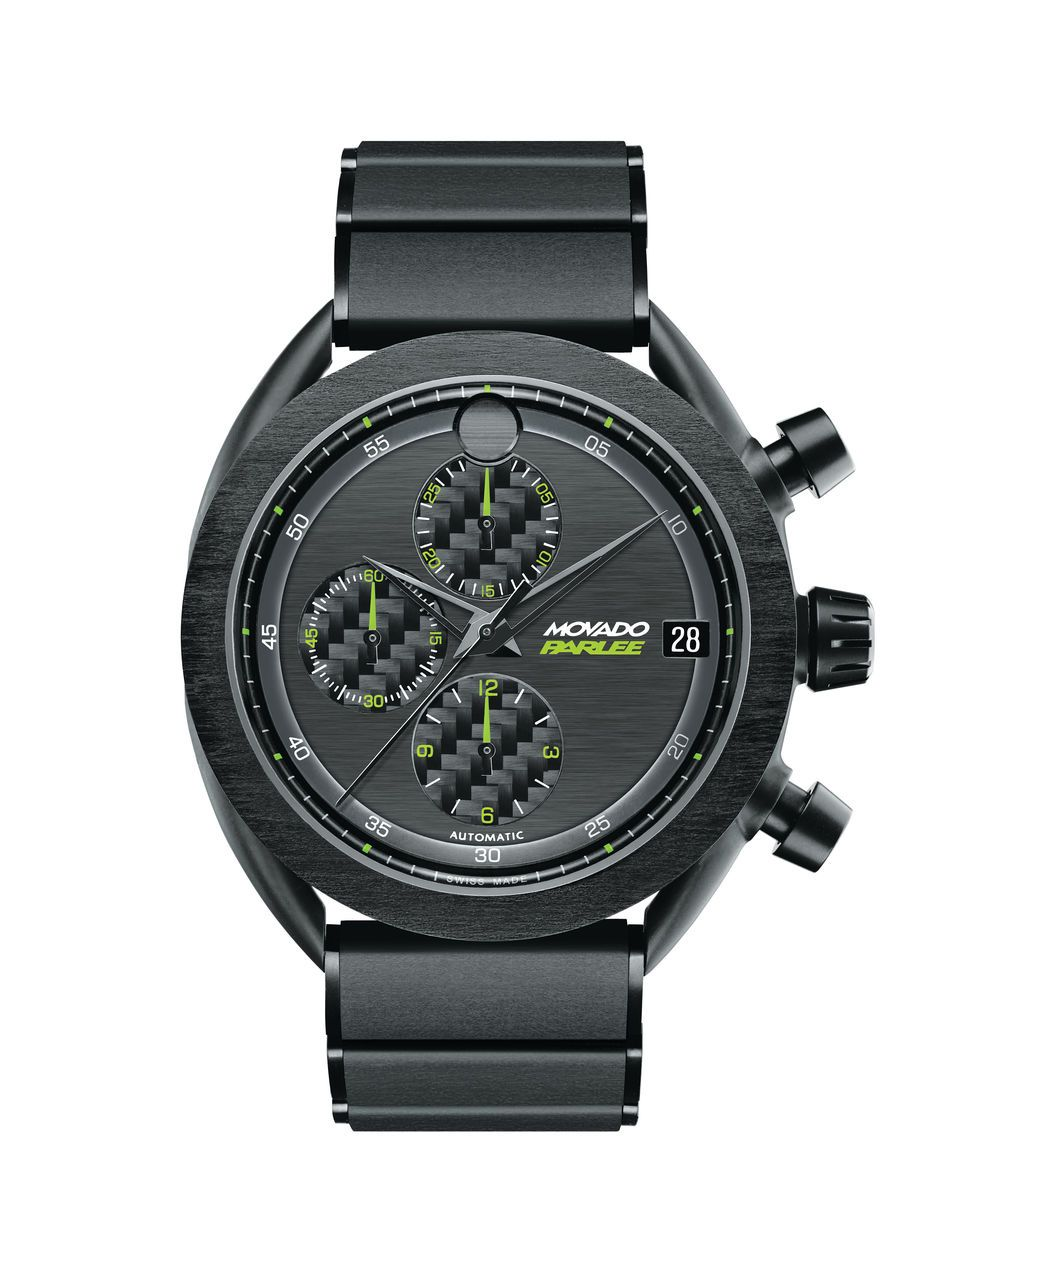 Men's Movado Parlee automatic chronograph, individually numbered limited edition, 46 mm black PVD-finished titanium case with unidirectional carbon fiber bezel, black unidirectional carbon fiber dial with 3 carbon fiber subdials, minute reflector, green accents, date; black unidirectional carbon fiber/PVD-finished titanium push-button deployment bracelet.Model: 0606852!Price: $8480.99